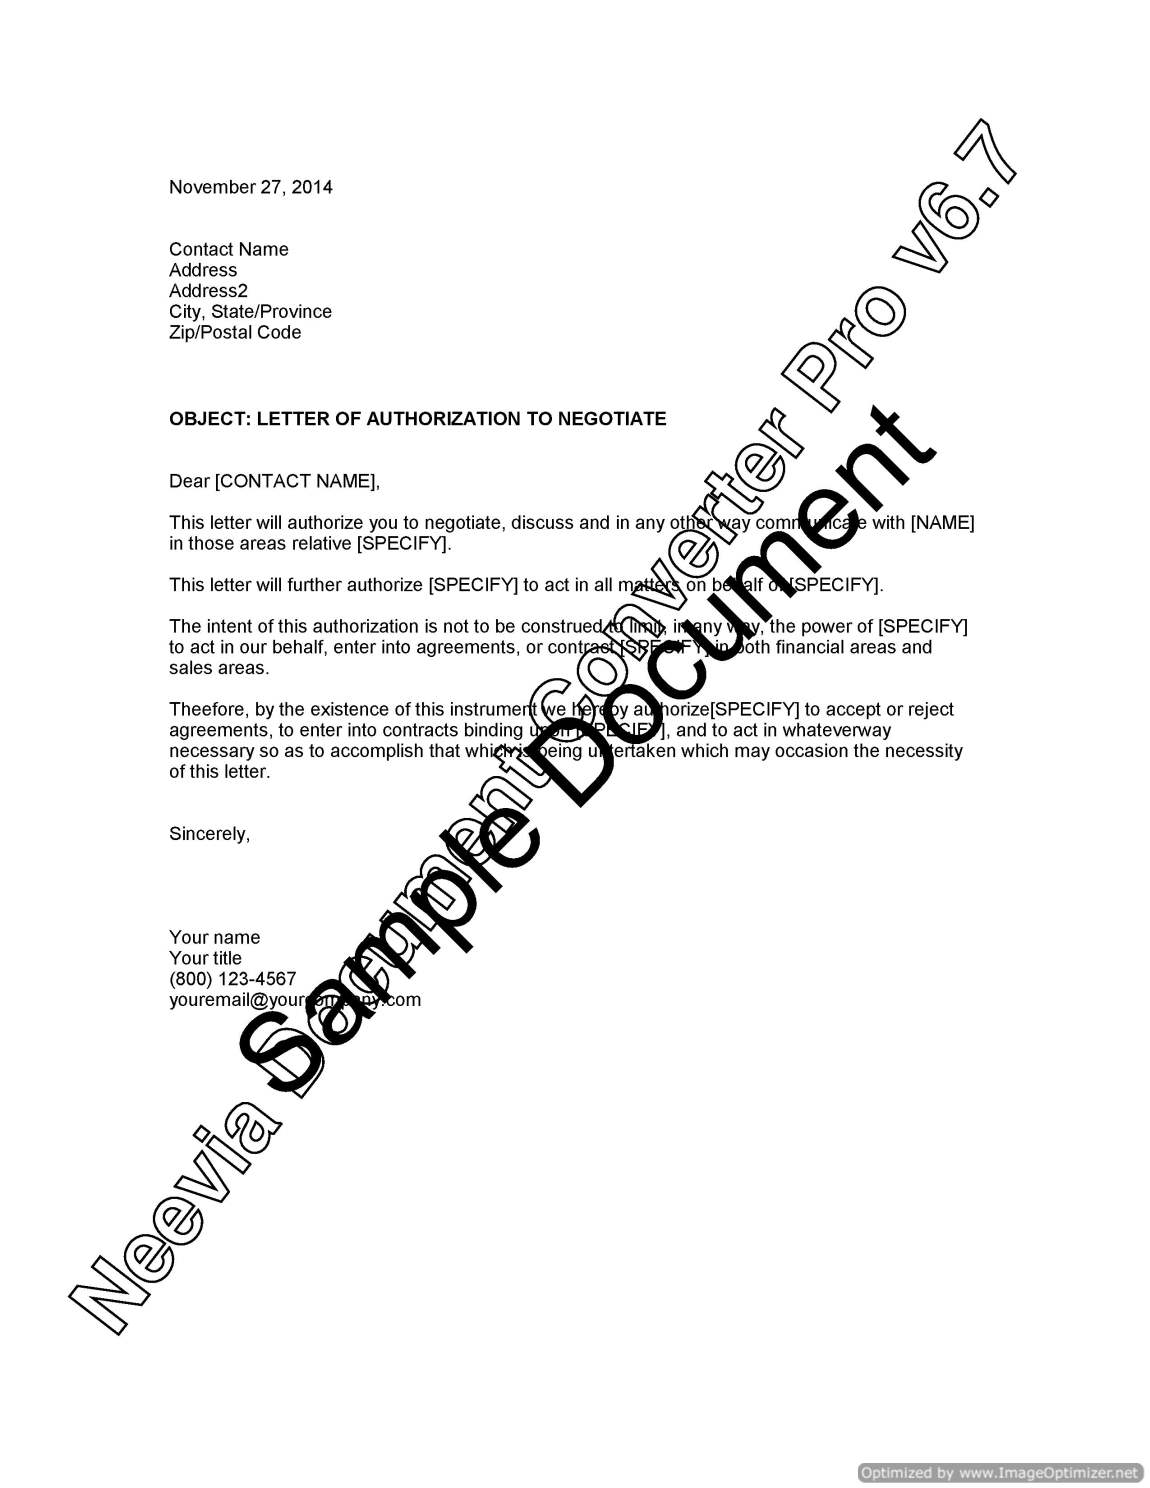 landlord notice of termination of lease lawyer com au letter of authorization to negotiate